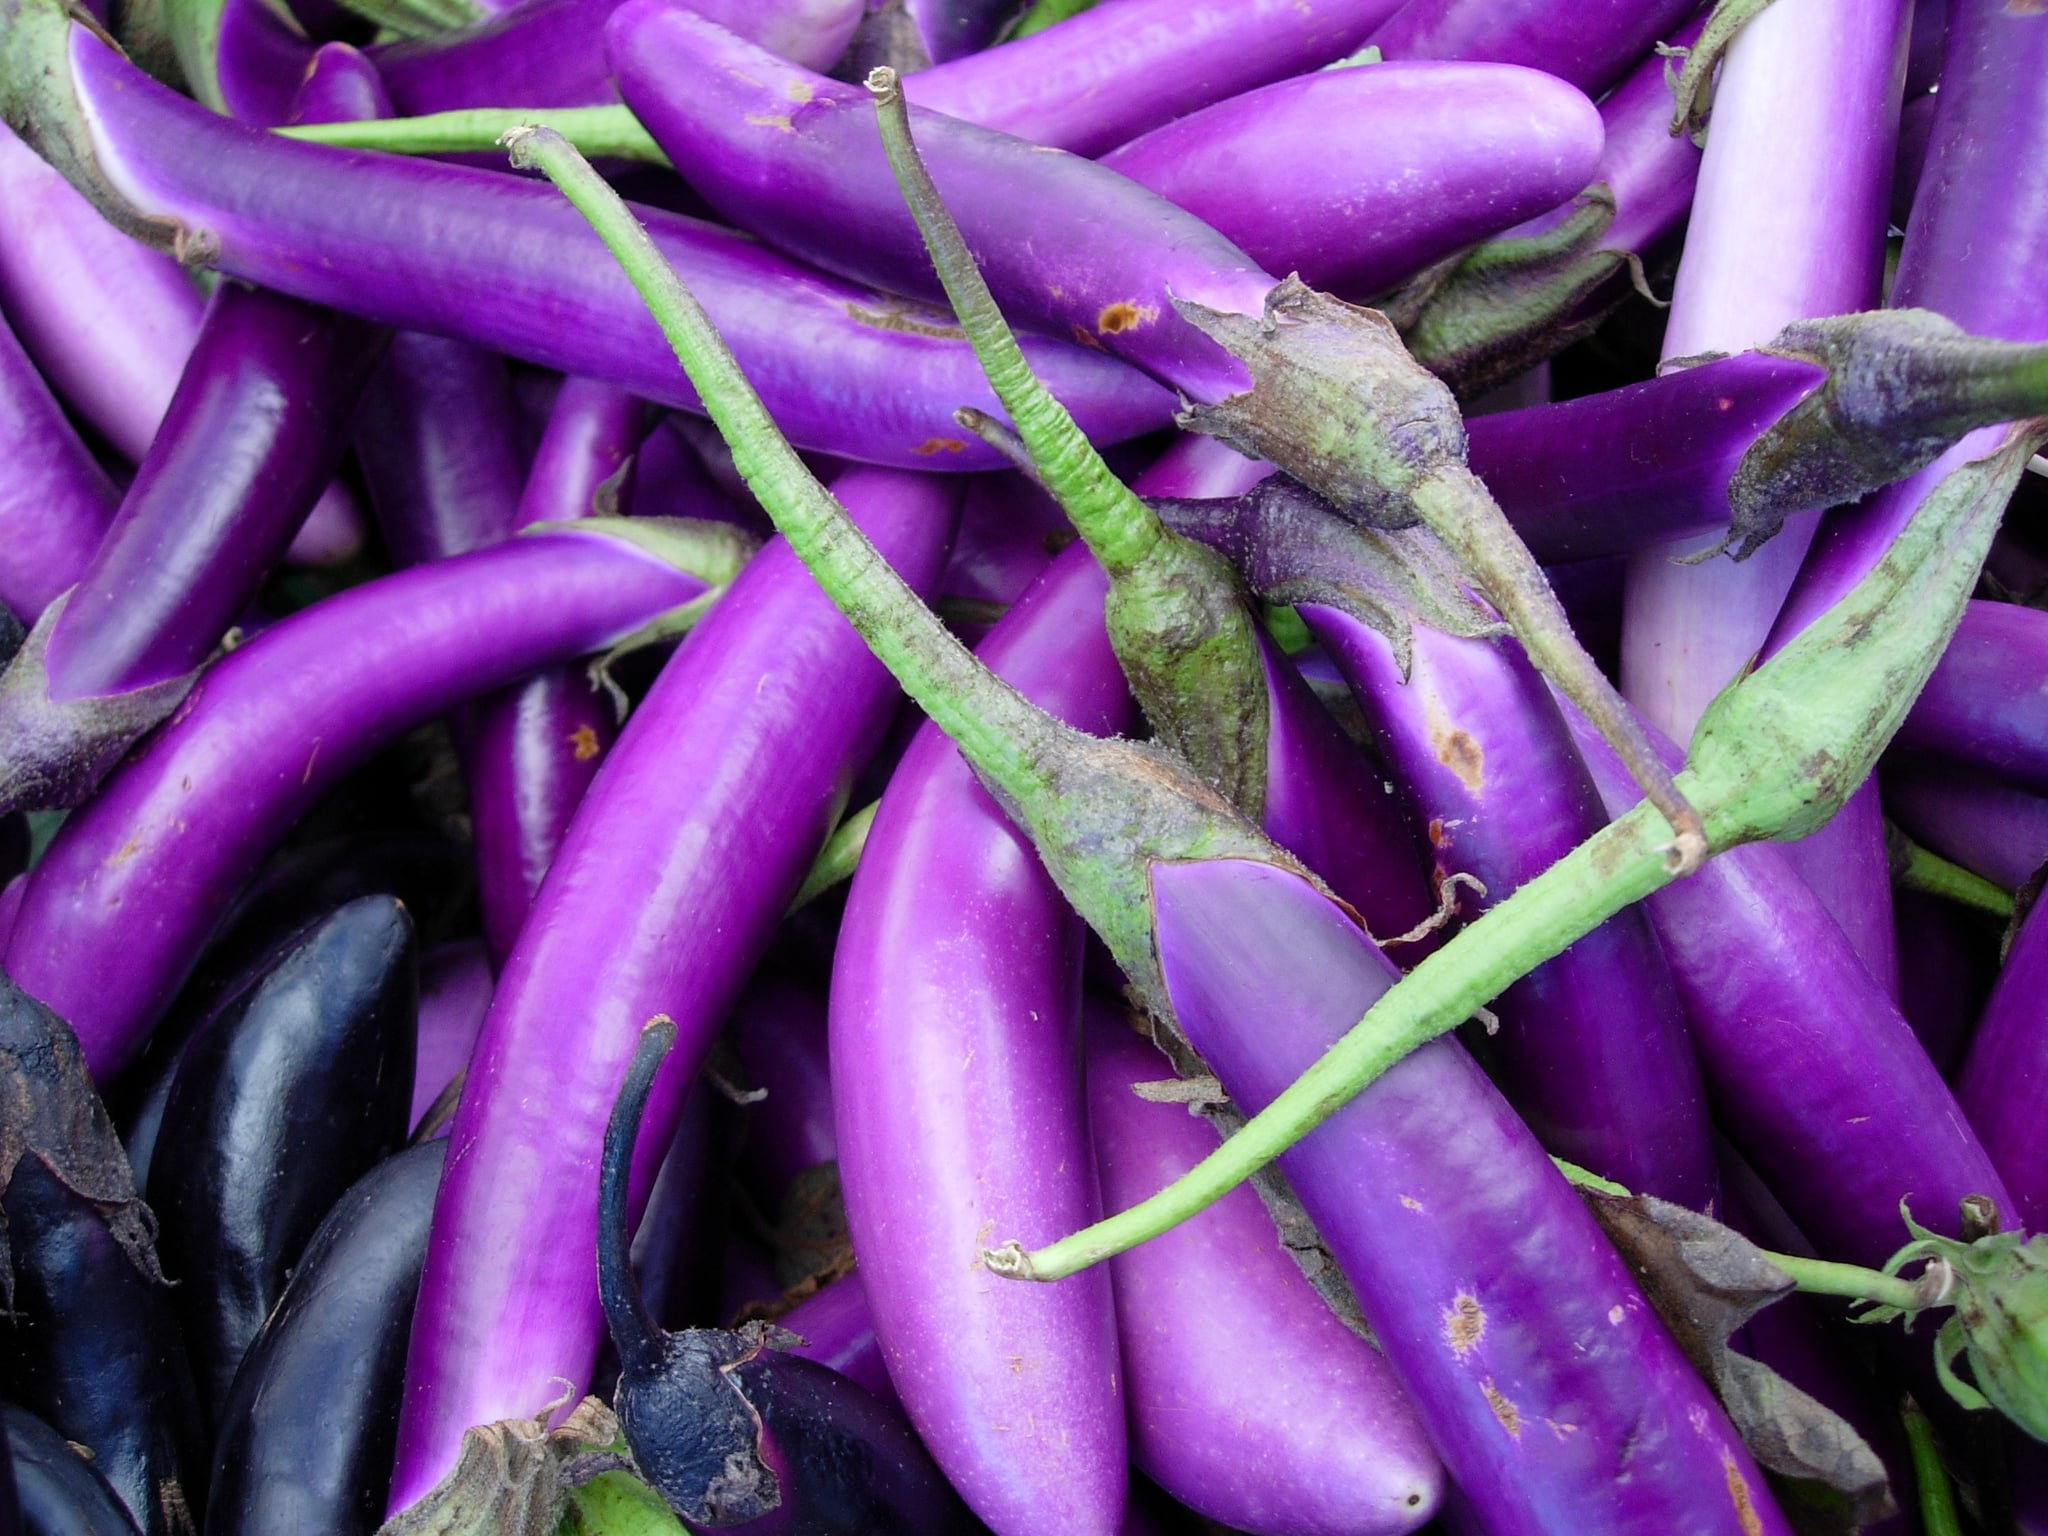 What to Buy: Japanese Eggplants